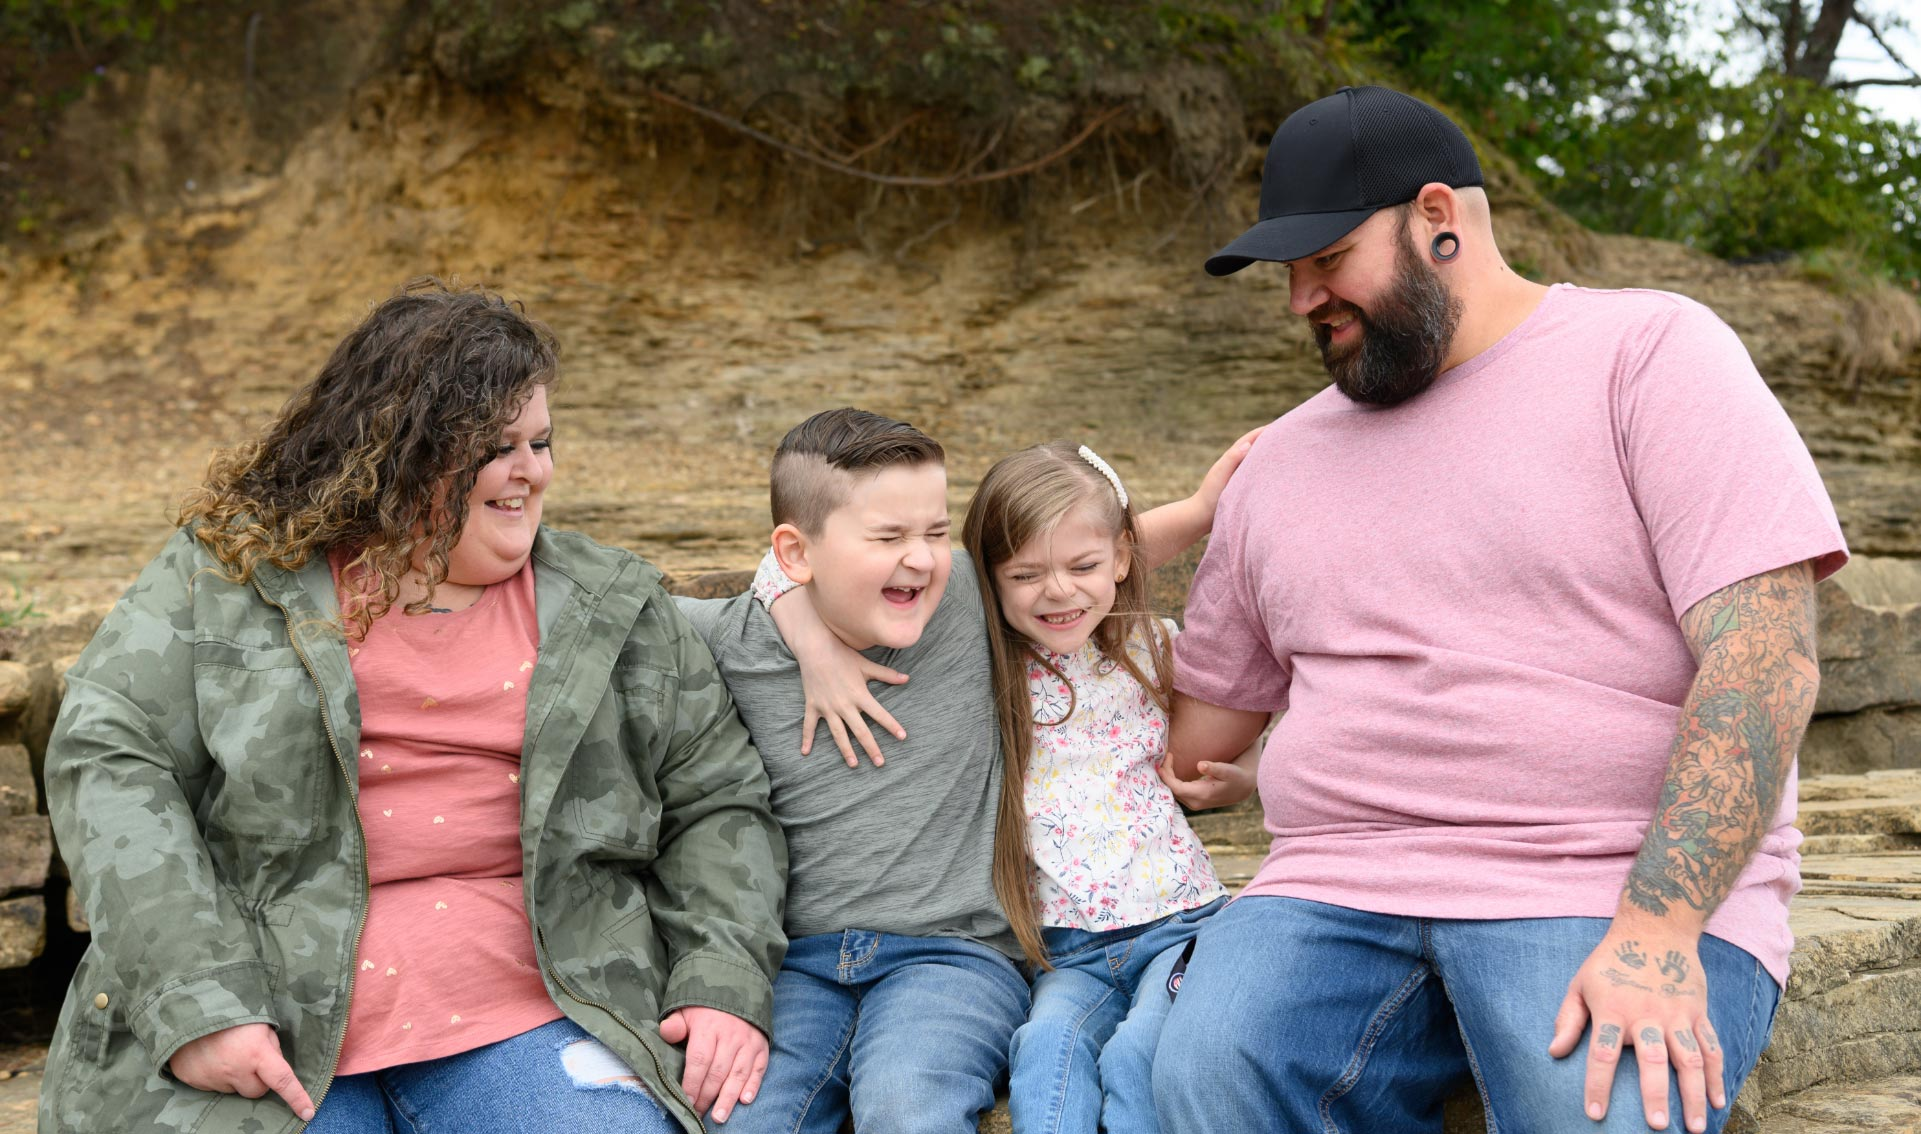 Taytum and her family all laugh as they hug each other. They are sitting on some rocks in an outdoor setting.